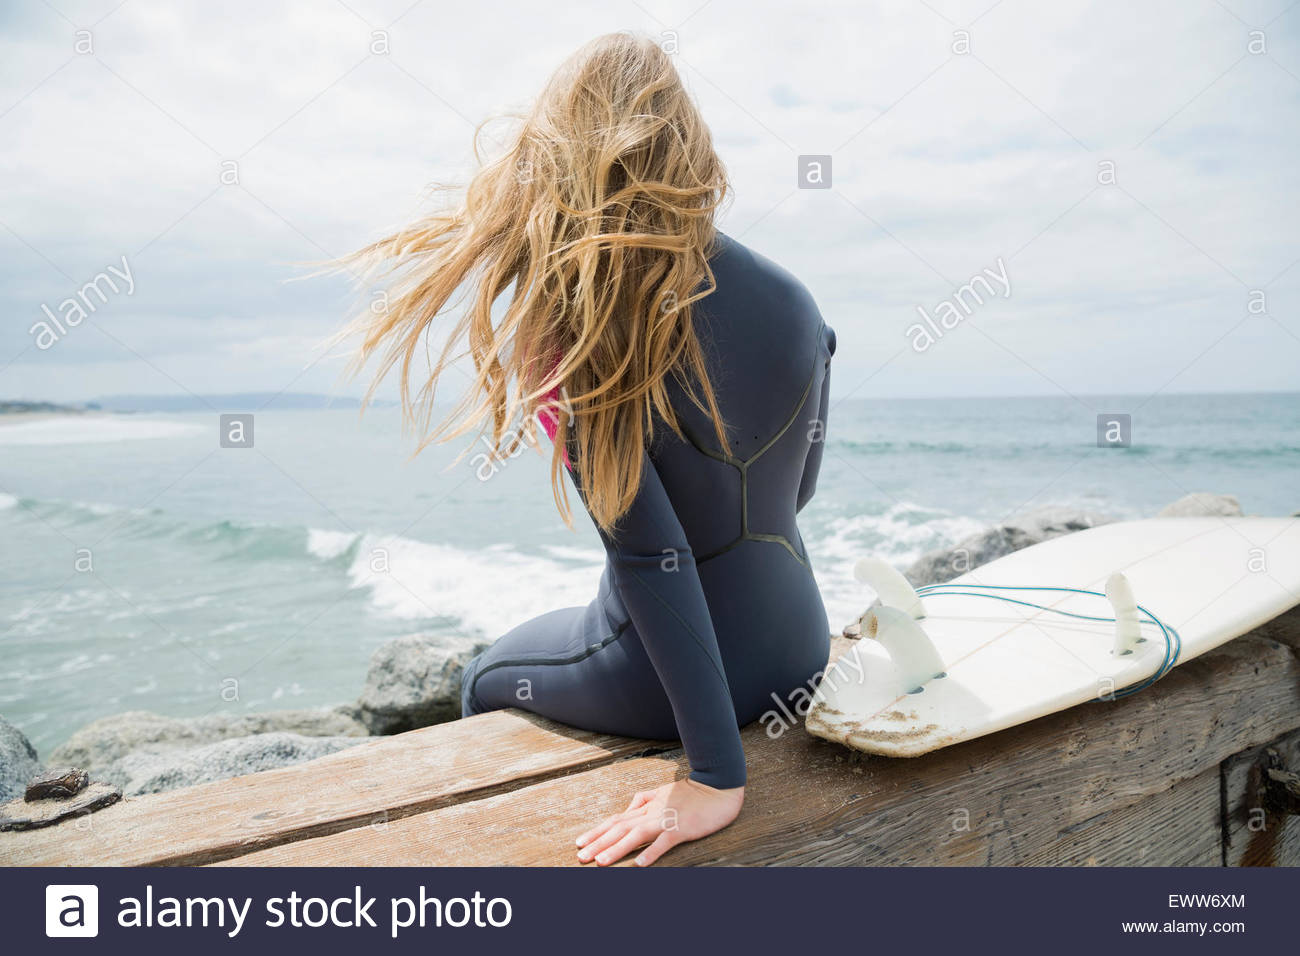 Blonde female surfer sitting with surfboard ocean jetty - Stock Image